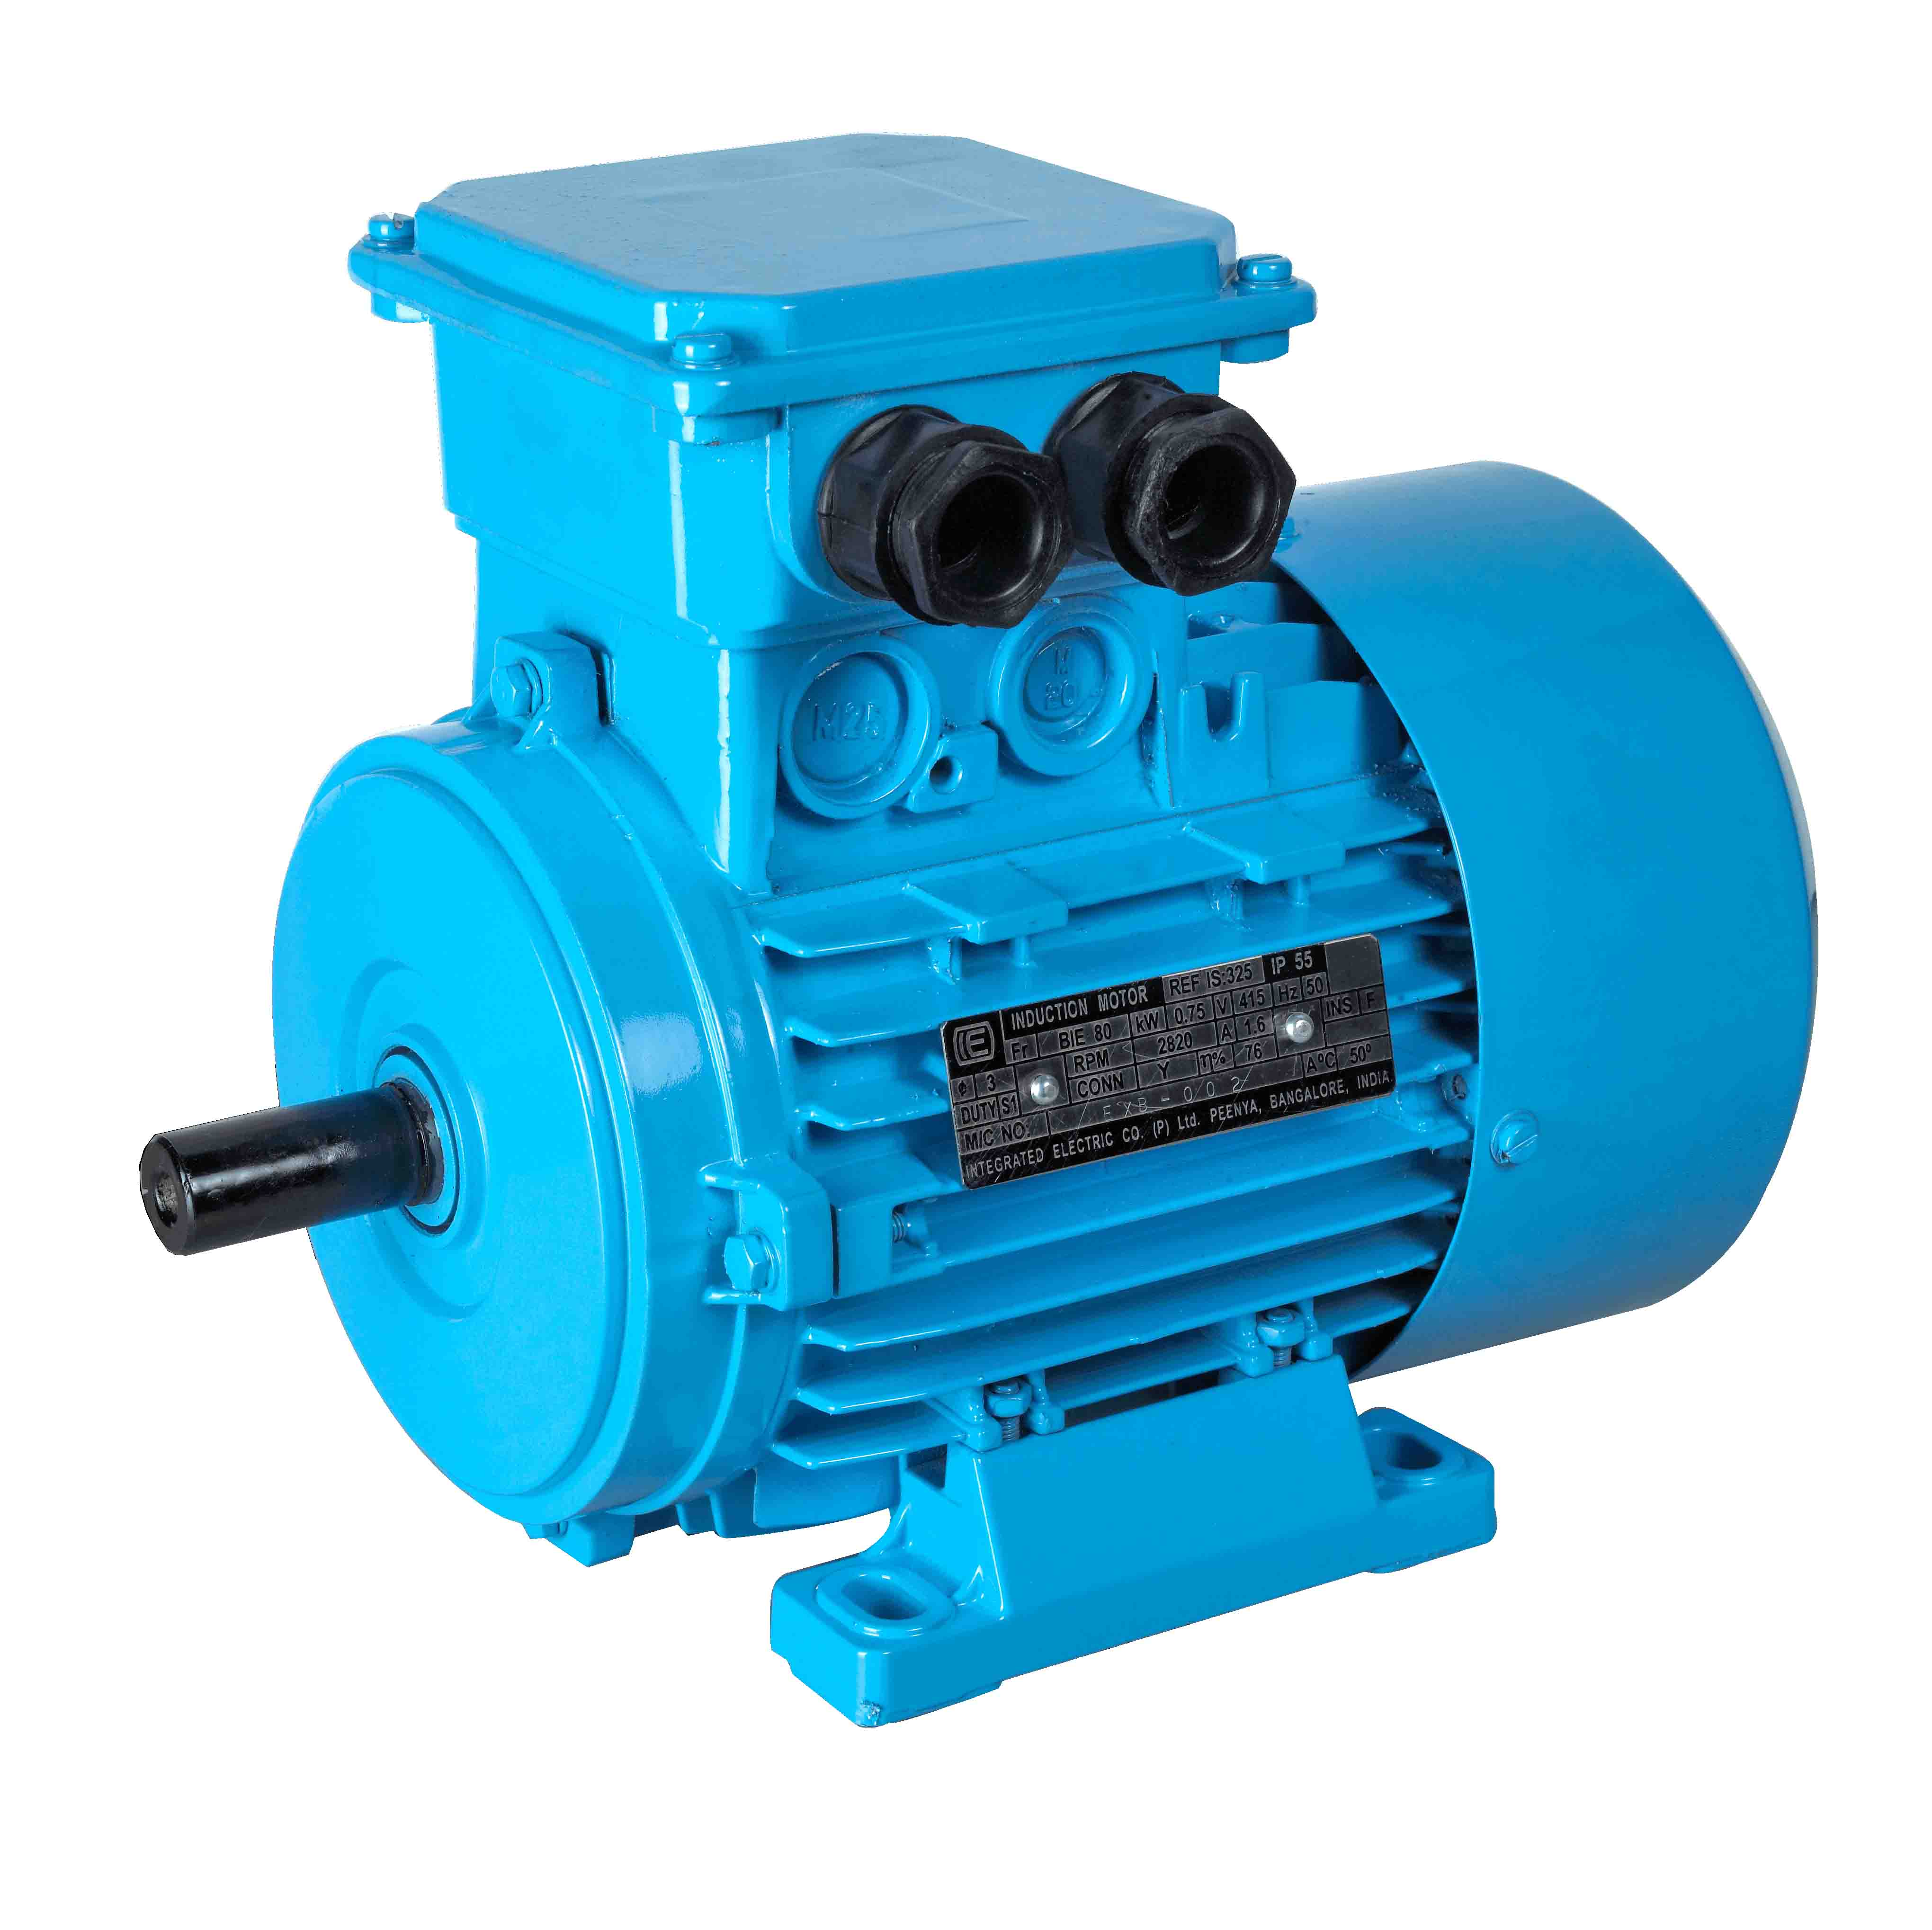 Iec integrated electric manufactures ac motors of for Standard motor kw ratings